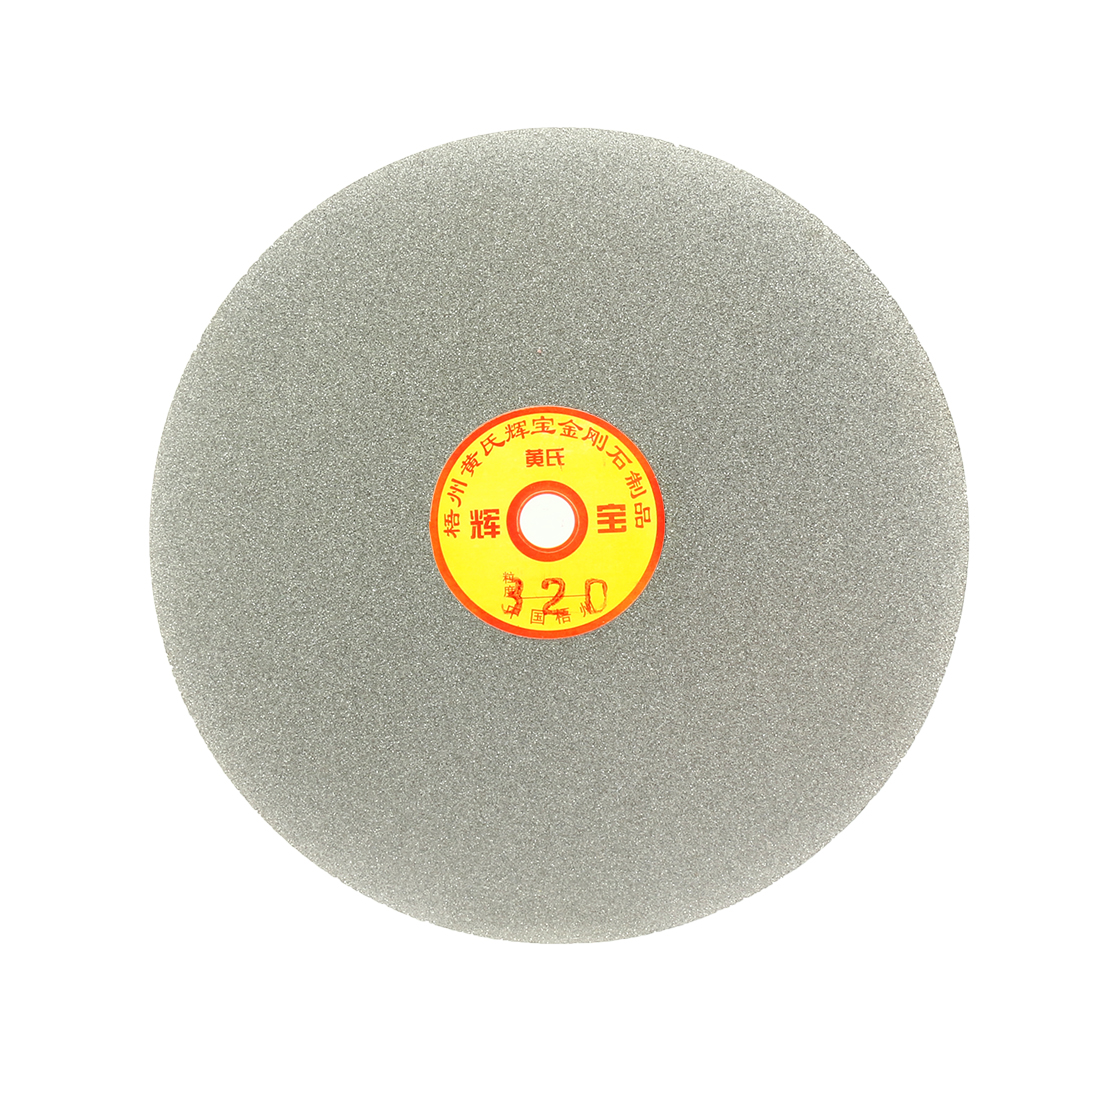 180mm 7-inch Grit 320 Diamond Coated Flat Lap Disk Wheel Grinding Sanding Disc